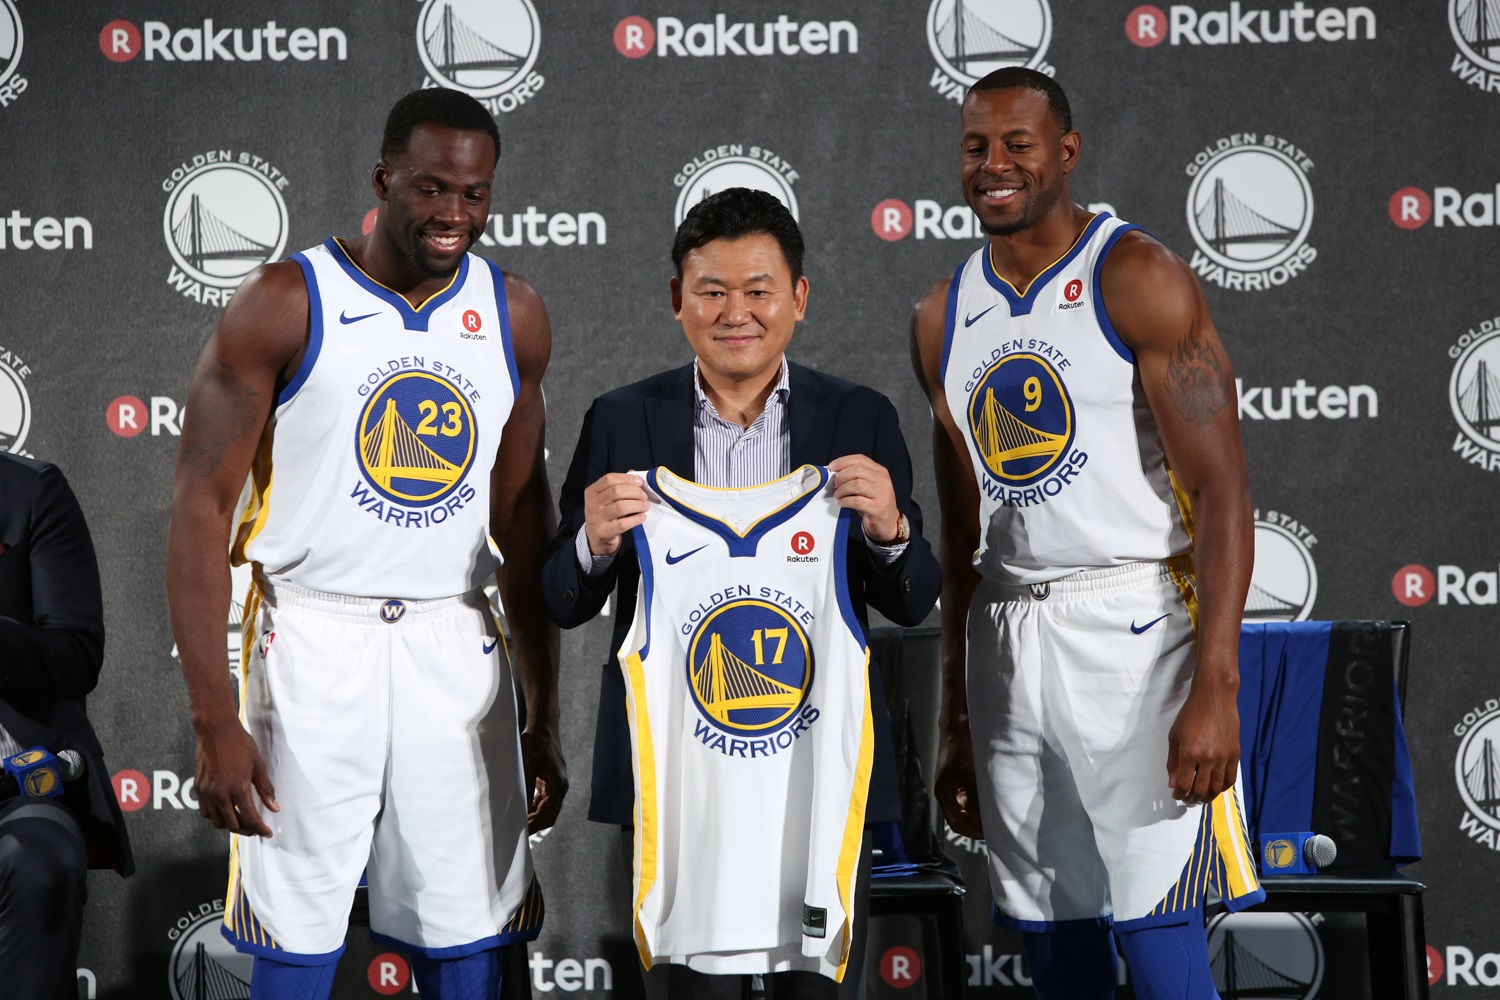 newest 5ca16 aac25 Rakuten and Golden State Warriors have a ball at partnership ...